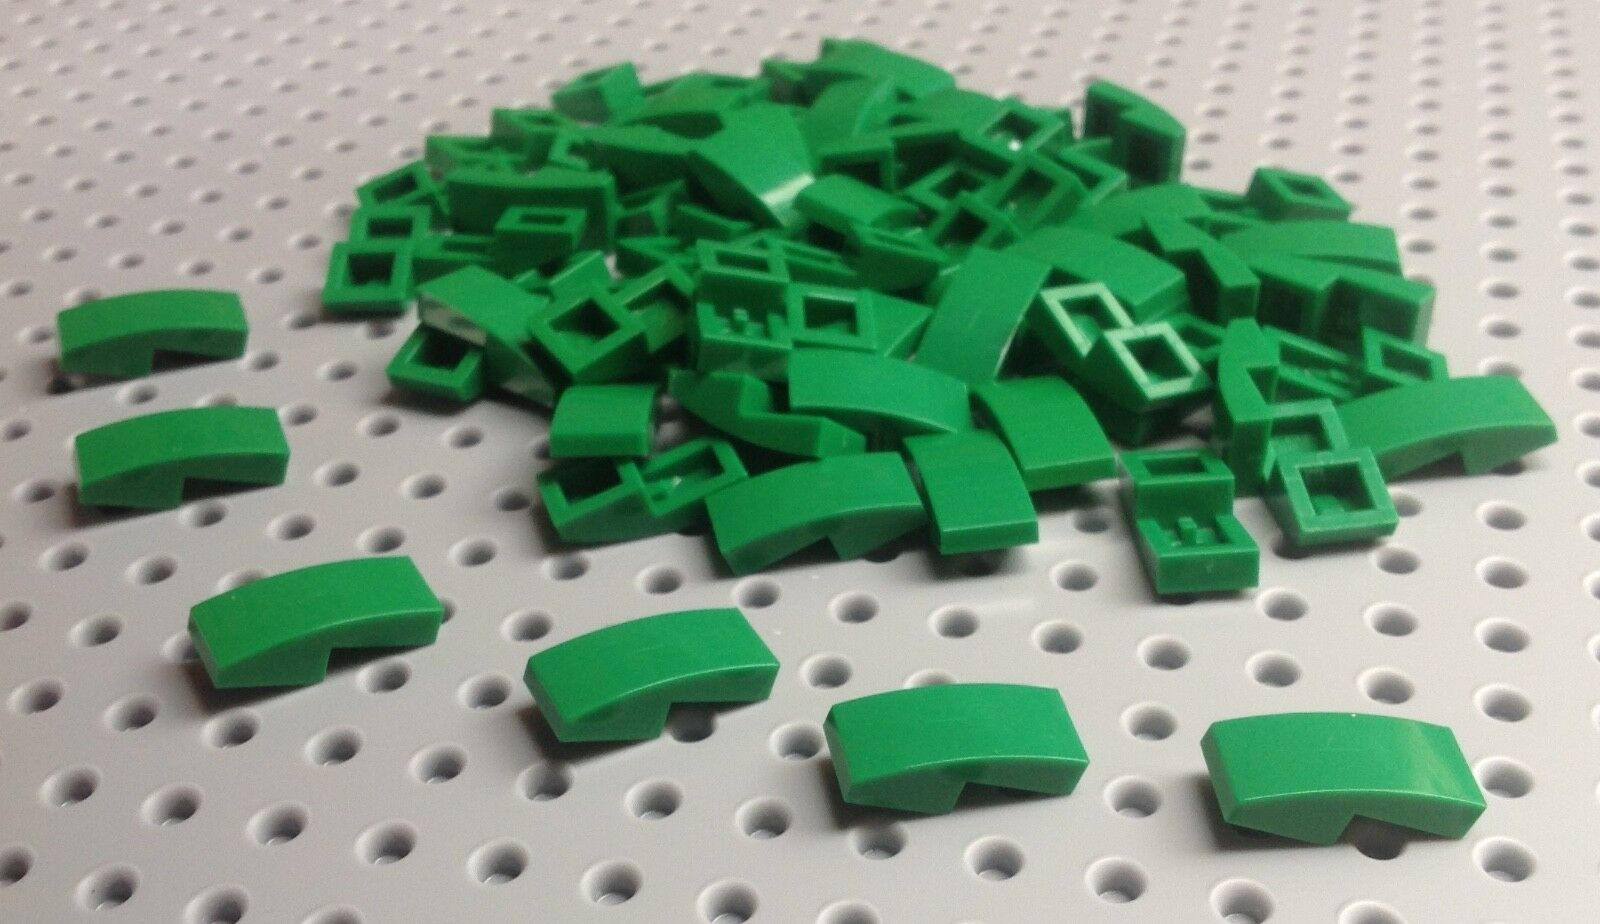 LEGO Green Slope Curved 2x1 No Studs Lot of 100 Parts Pieces 11477